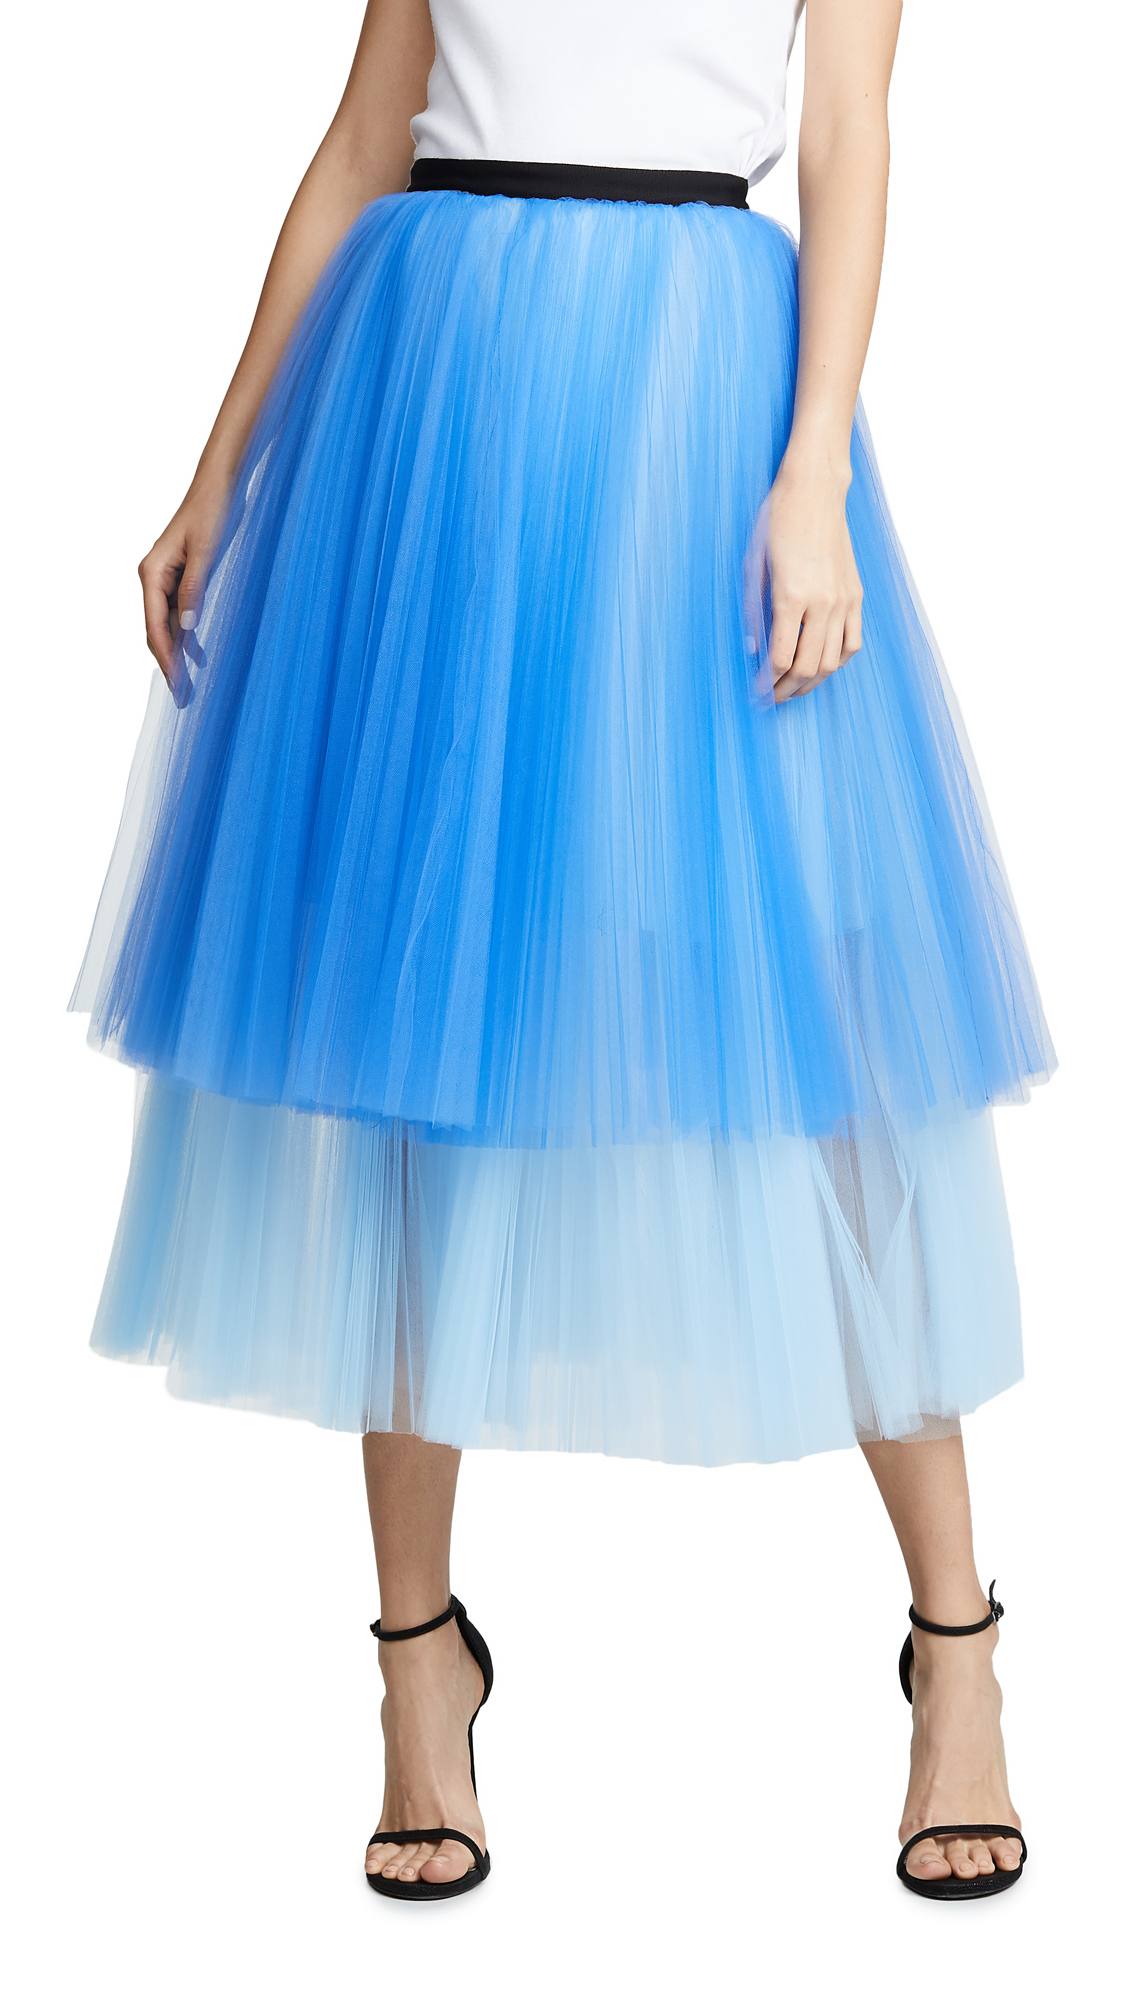 NOVIS Fay Pleated Evening Skirt in Royal/Powder Blue